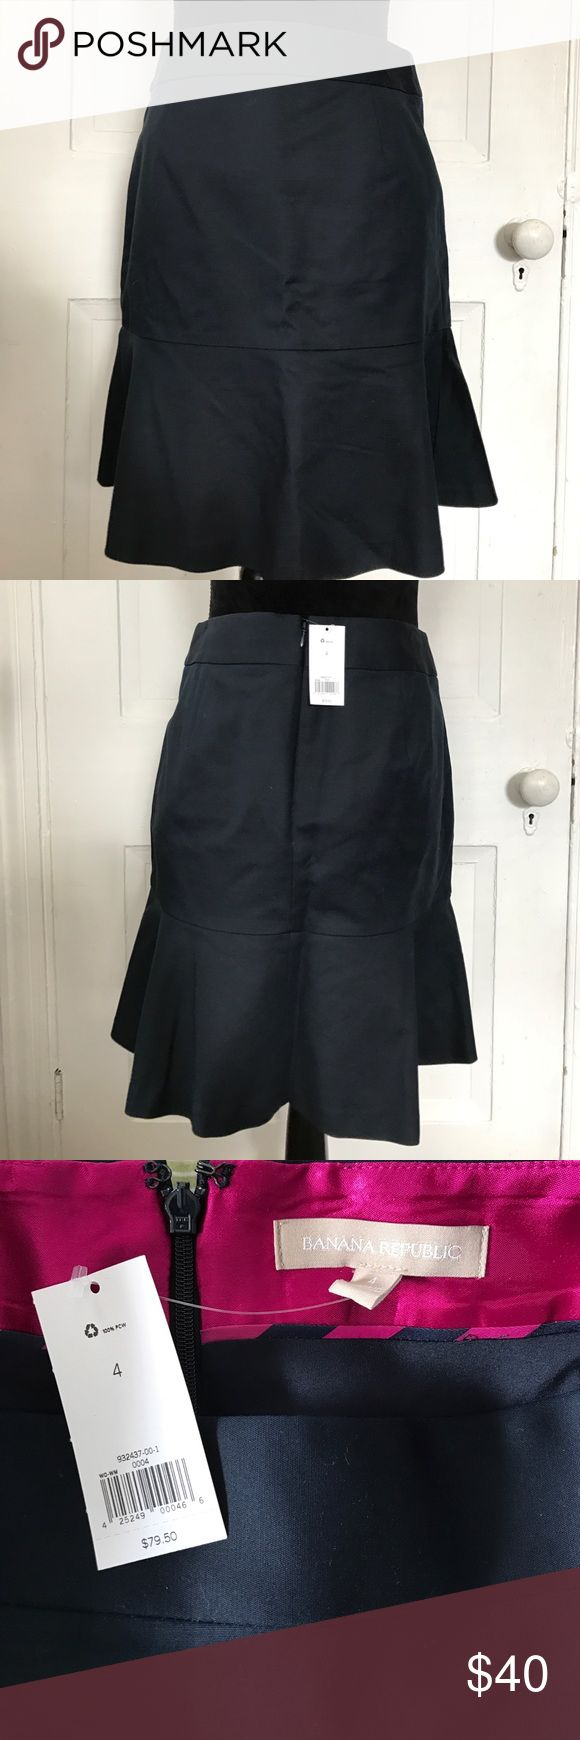 "Banana Republic Navy Blue Skirt NWT Banana Republic Navy Blue Skirt. Waist width is 14.5"" / length is 19.5"" Banana Republic Skirts Mini"